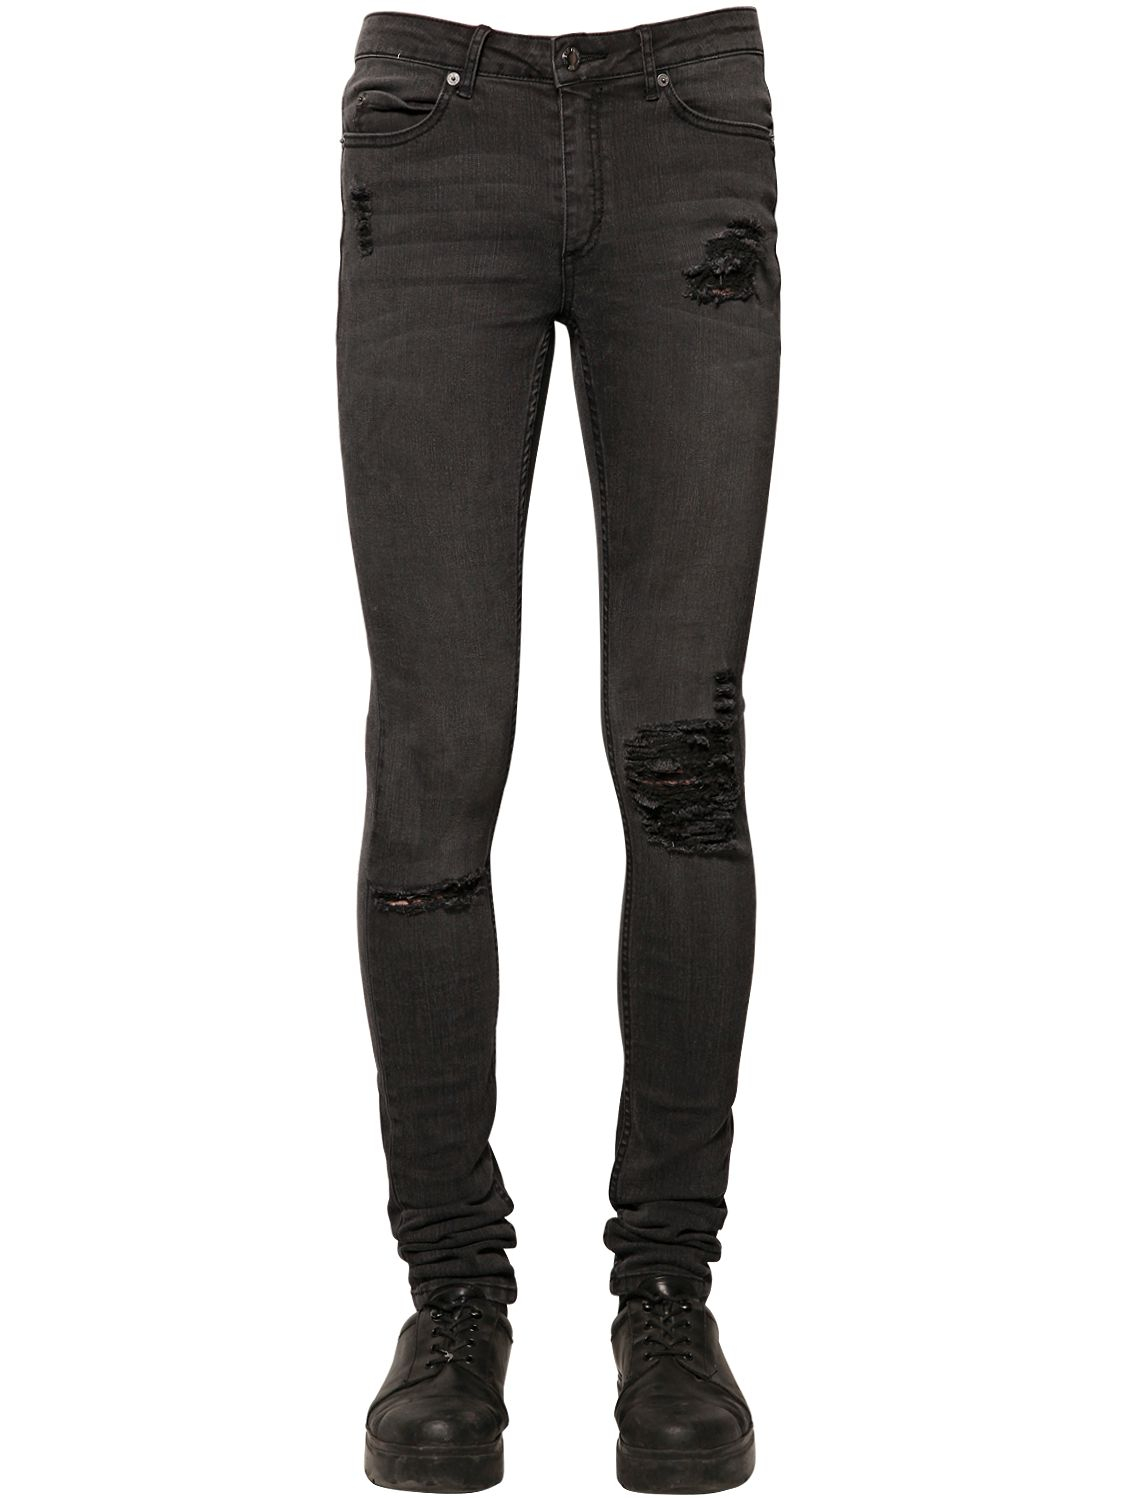 Cheap monday 15.5cm Washed Stretch Cotton Denim Jeans in Black for